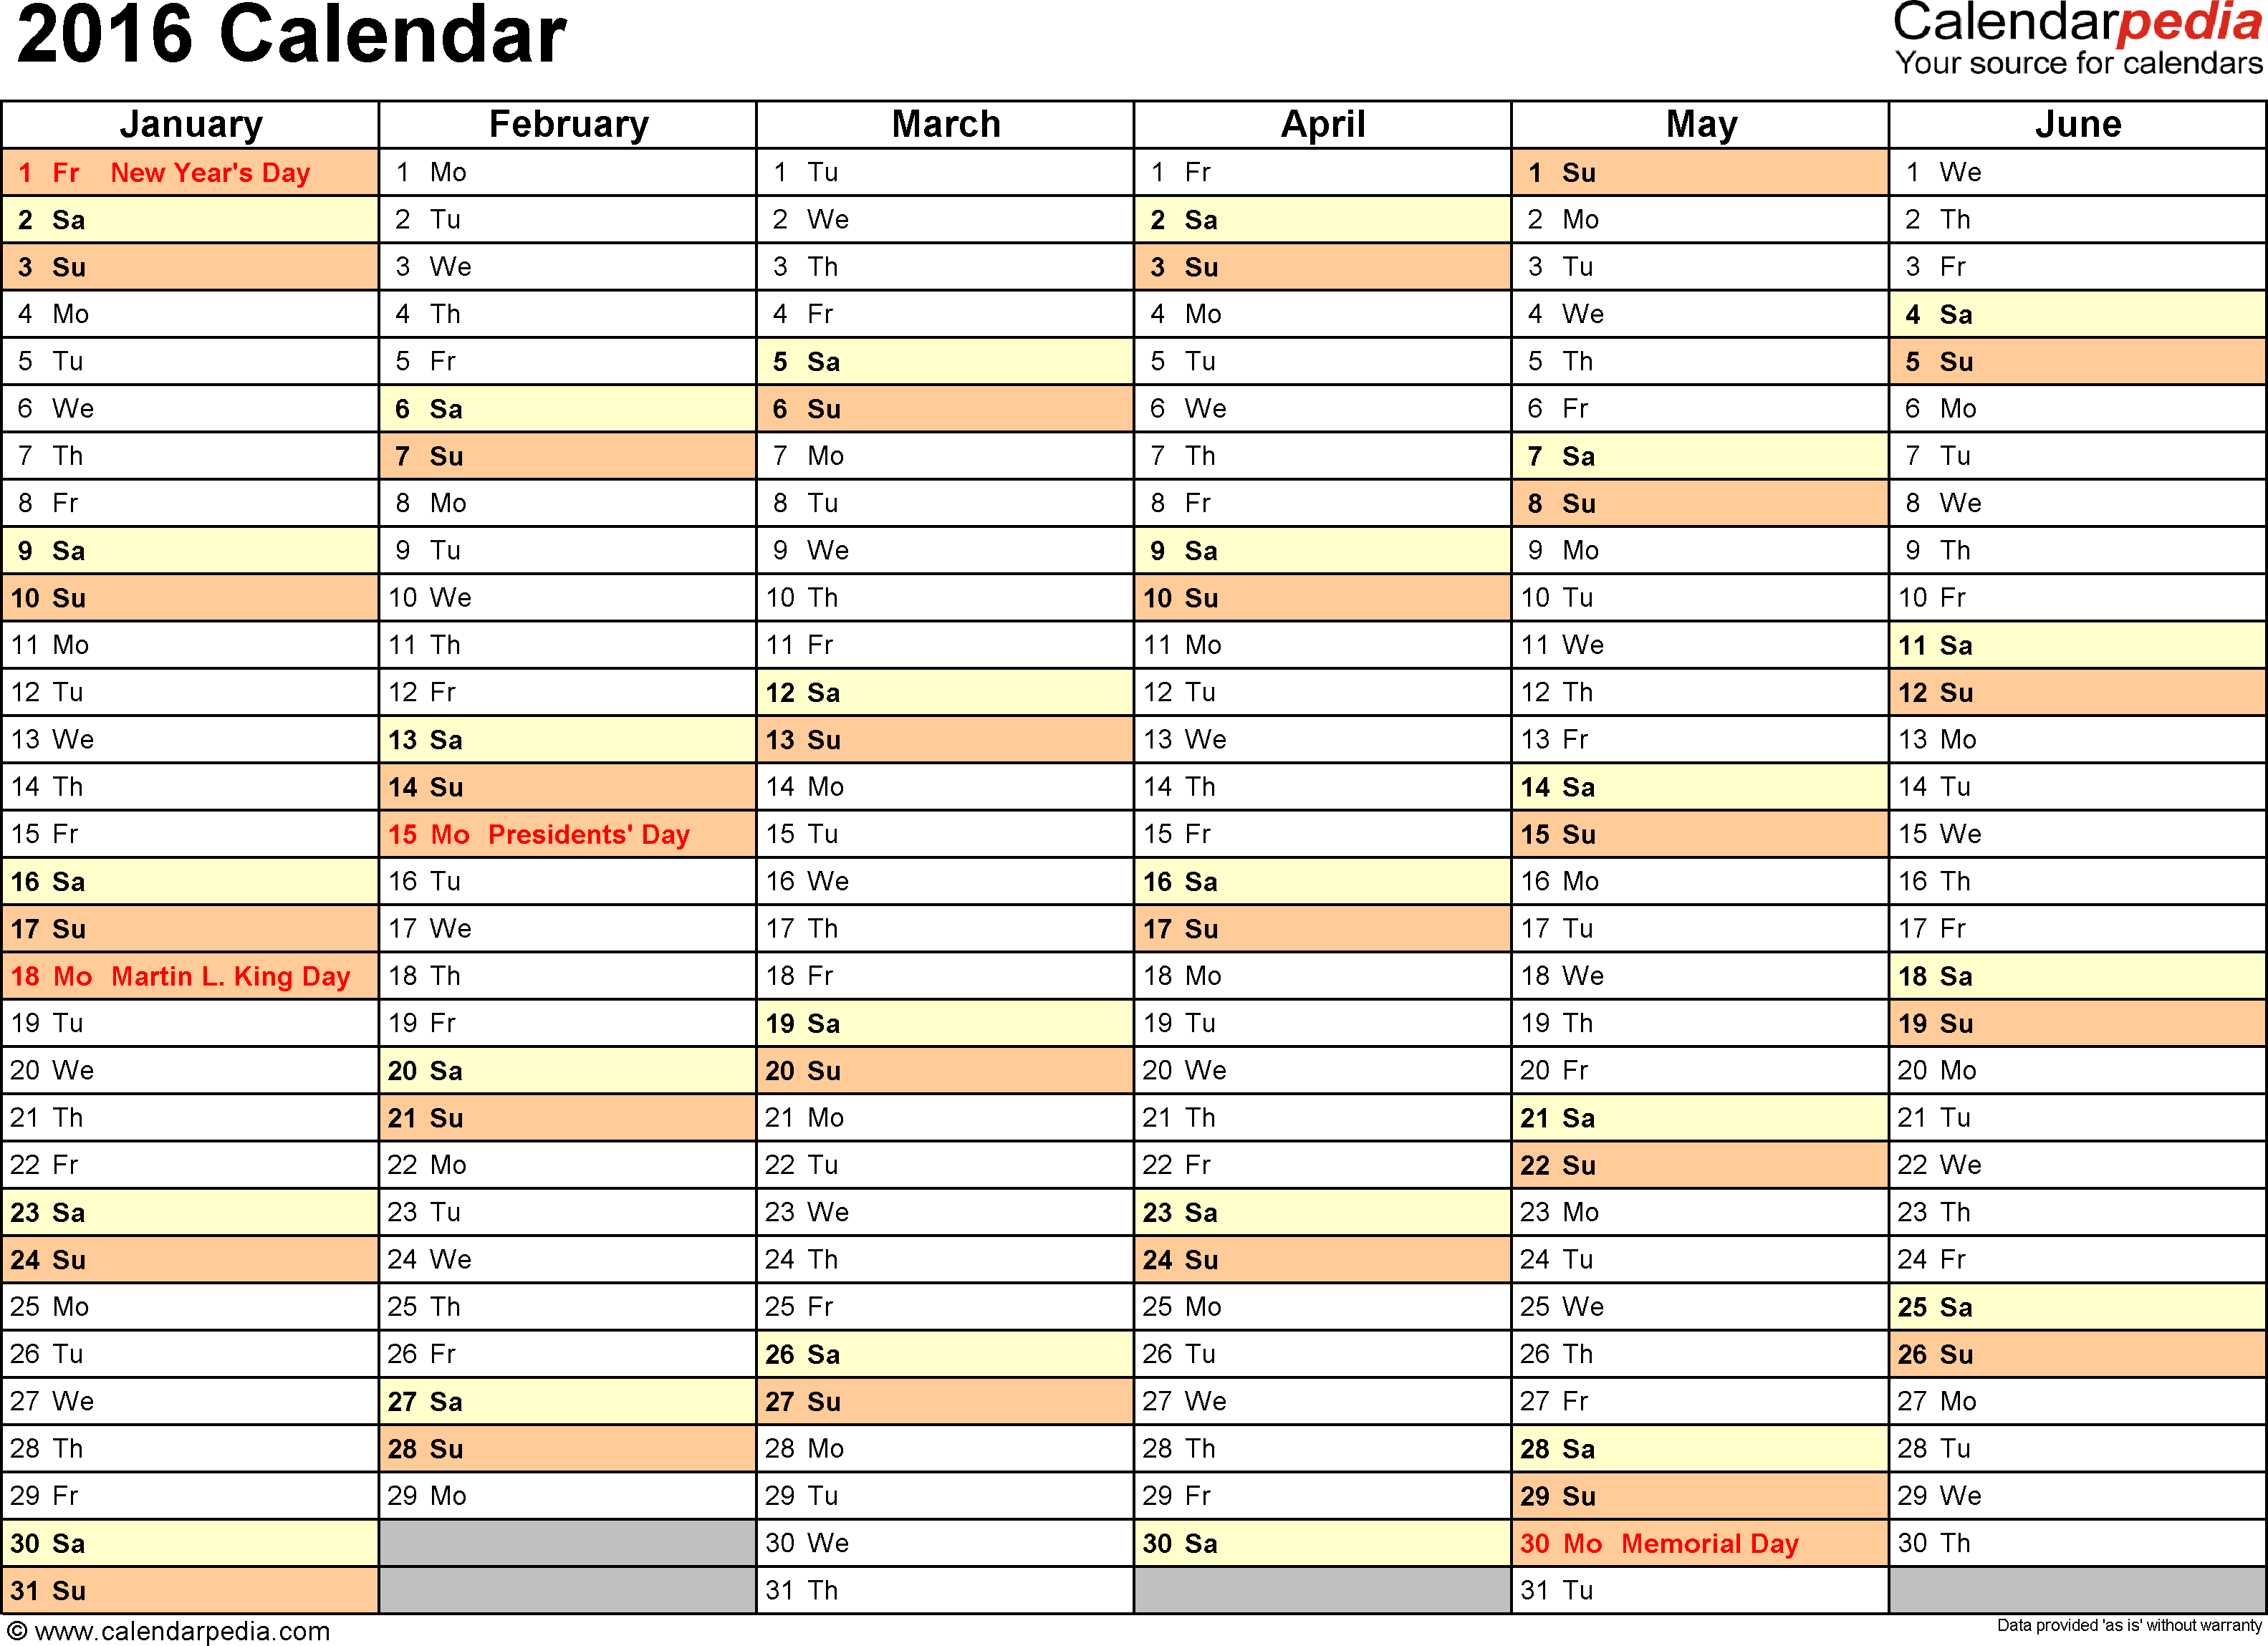 Ediblewildsus  Splendid  Calendar  Download  Free Printable Excel Templates Xls With Marvelous Template   Calendar For Excel Months Horizontally  Pages Landscape Orientation With Breathtaking Helpful Excel Macros Also Mean And Standard Deviation In Excel In Addition In An Excel Formula And Copy A Worksheet In Excel As Well As Macd Excel Additionally Excel Linking From Calendarpediacom With Ediblewildsus  Marvelous  Calendar  Download  Free Printable Excel Templates Xls With Breathtaking Template   Calendar For Excel Months Horizontally  Pages Landscape Orientation And Splendid Helpful Excel Macros Also Mean And Standard Deviation In Excel In Addition In An Excel Formula From Calendarpediacom